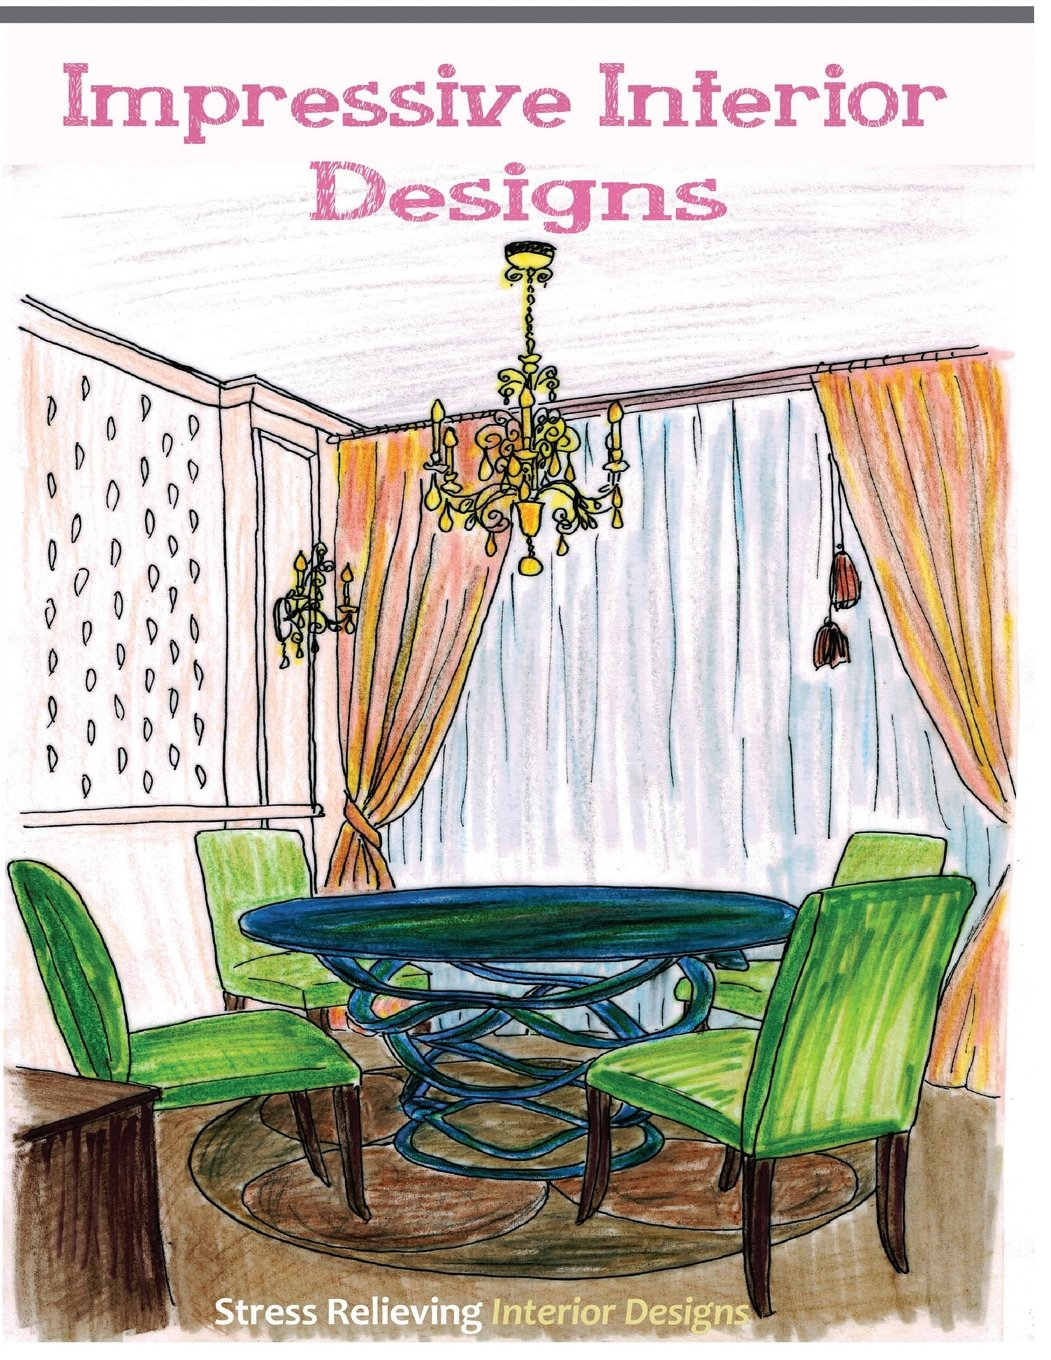 impressive interior designs adult coloring books featuring stress relieving interior designs